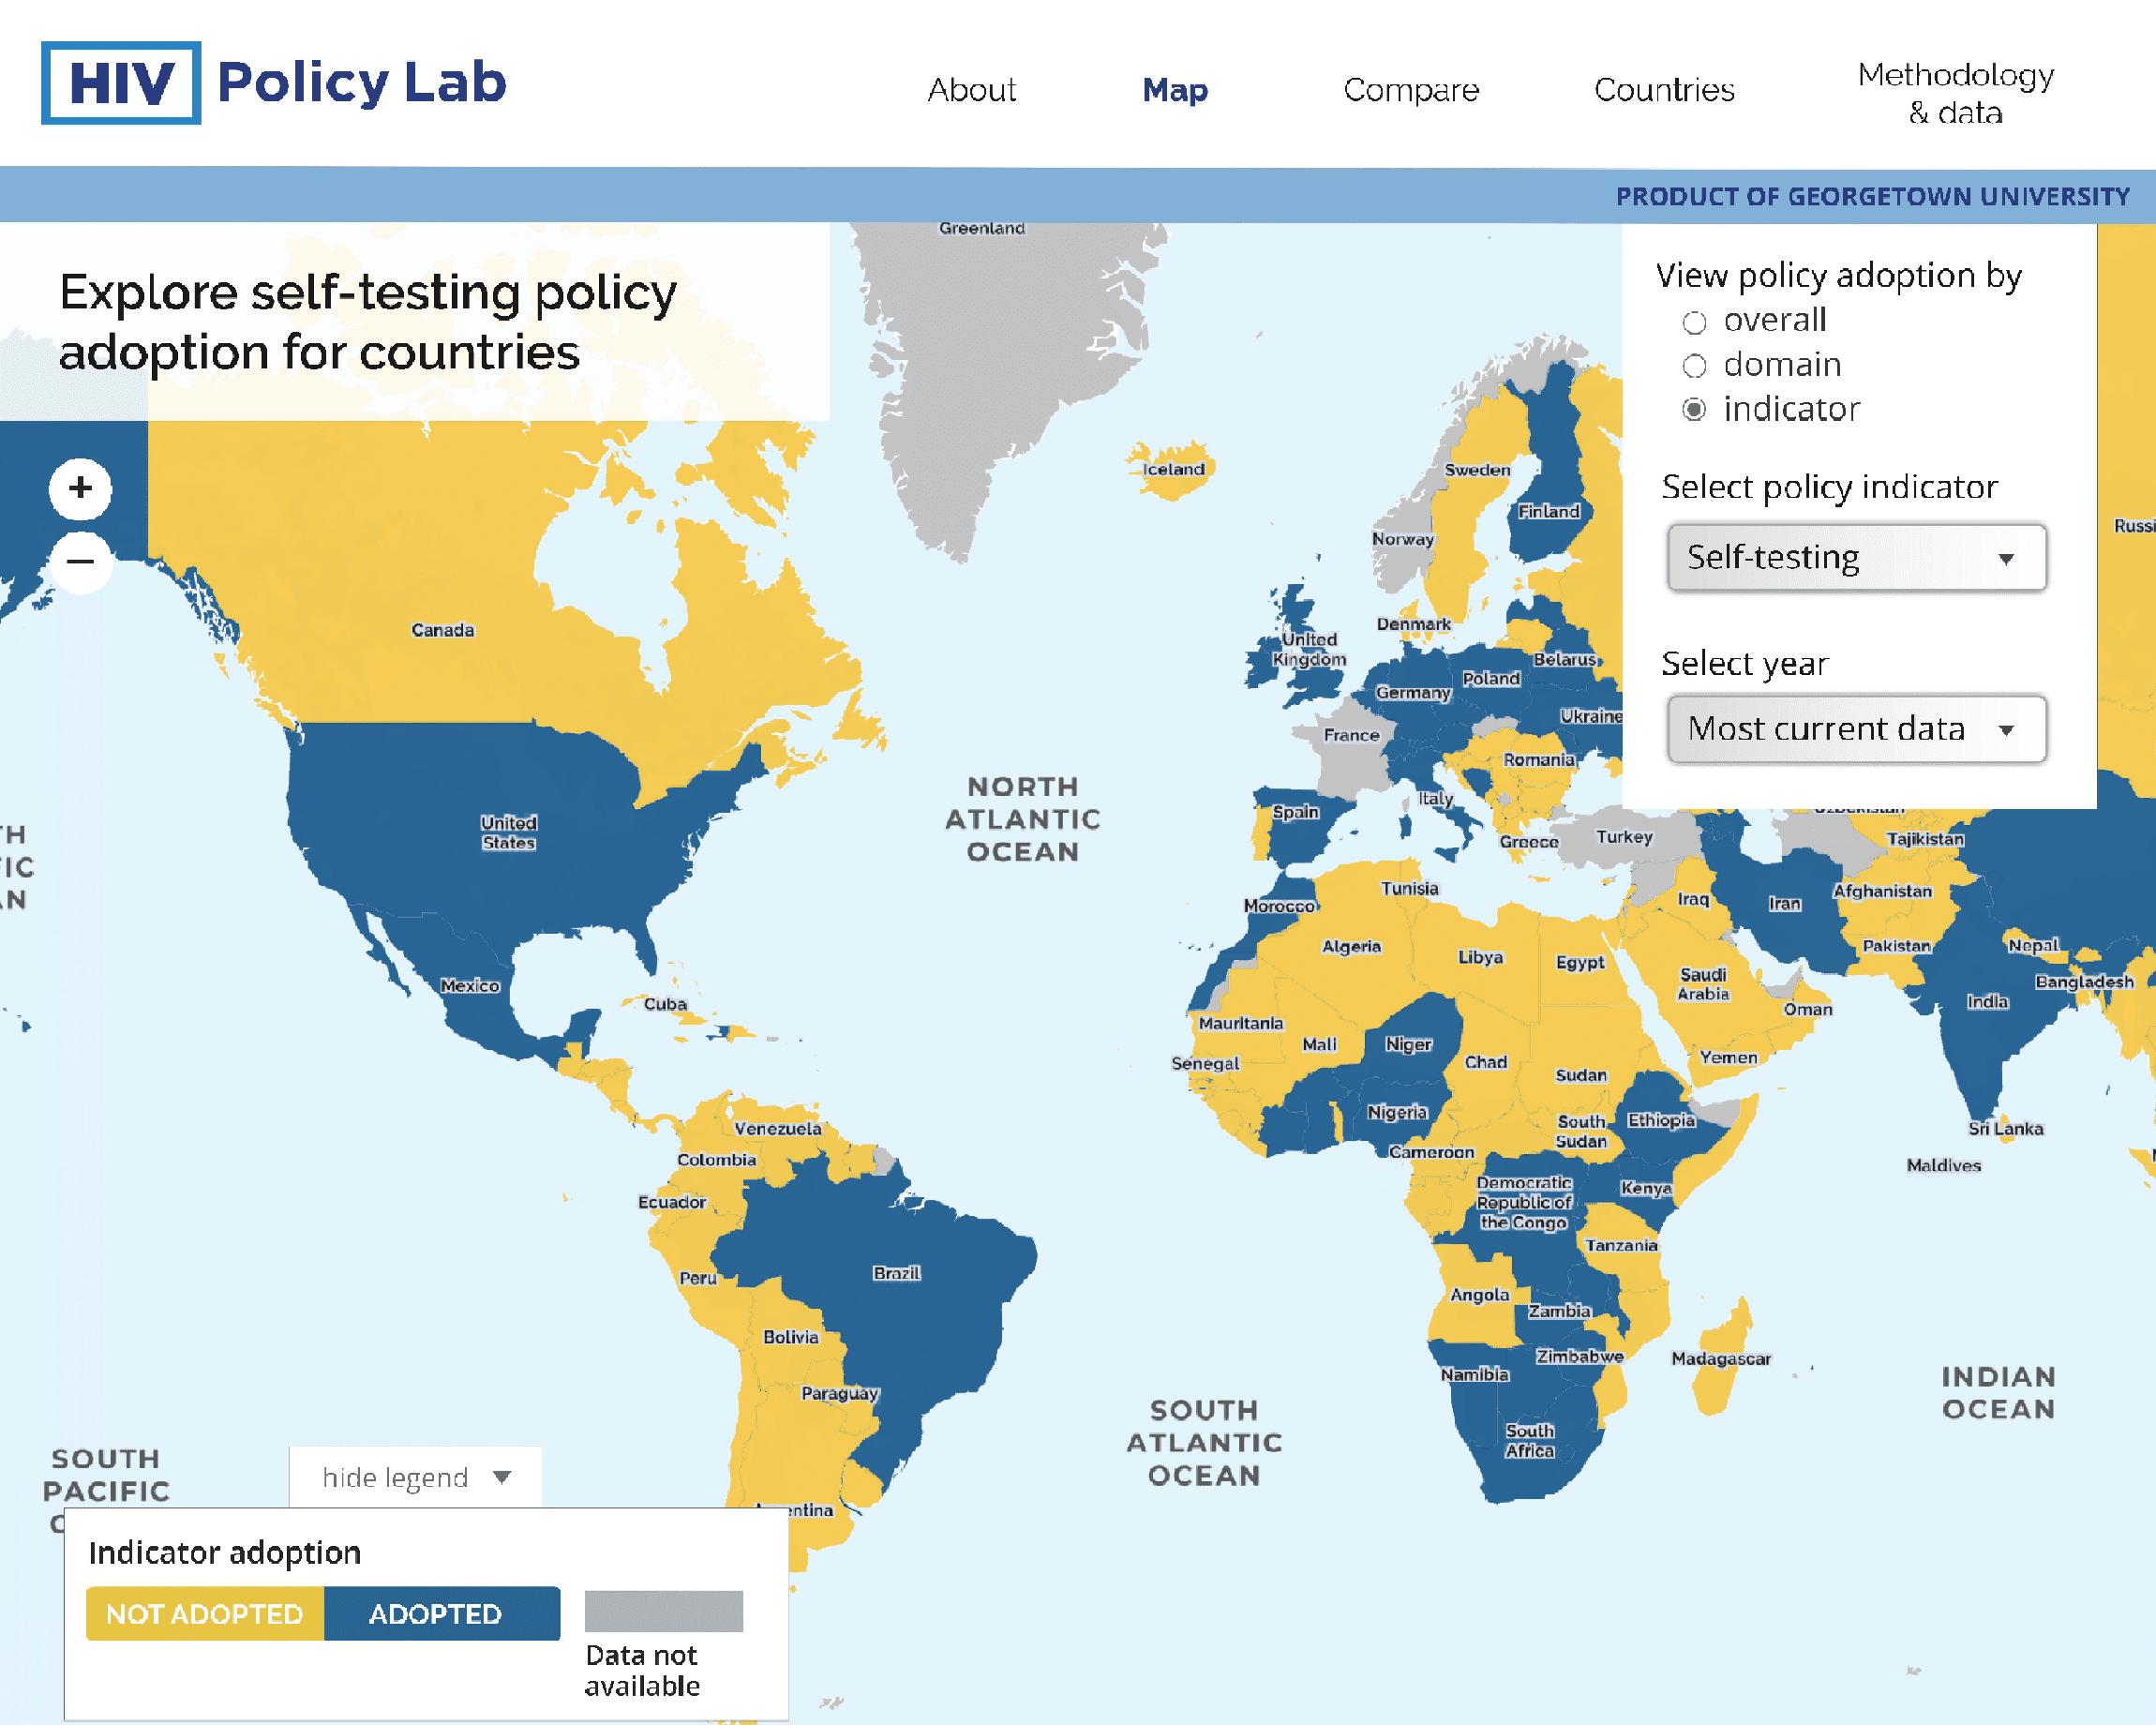 A screen shot of the HIV Policy Lab website